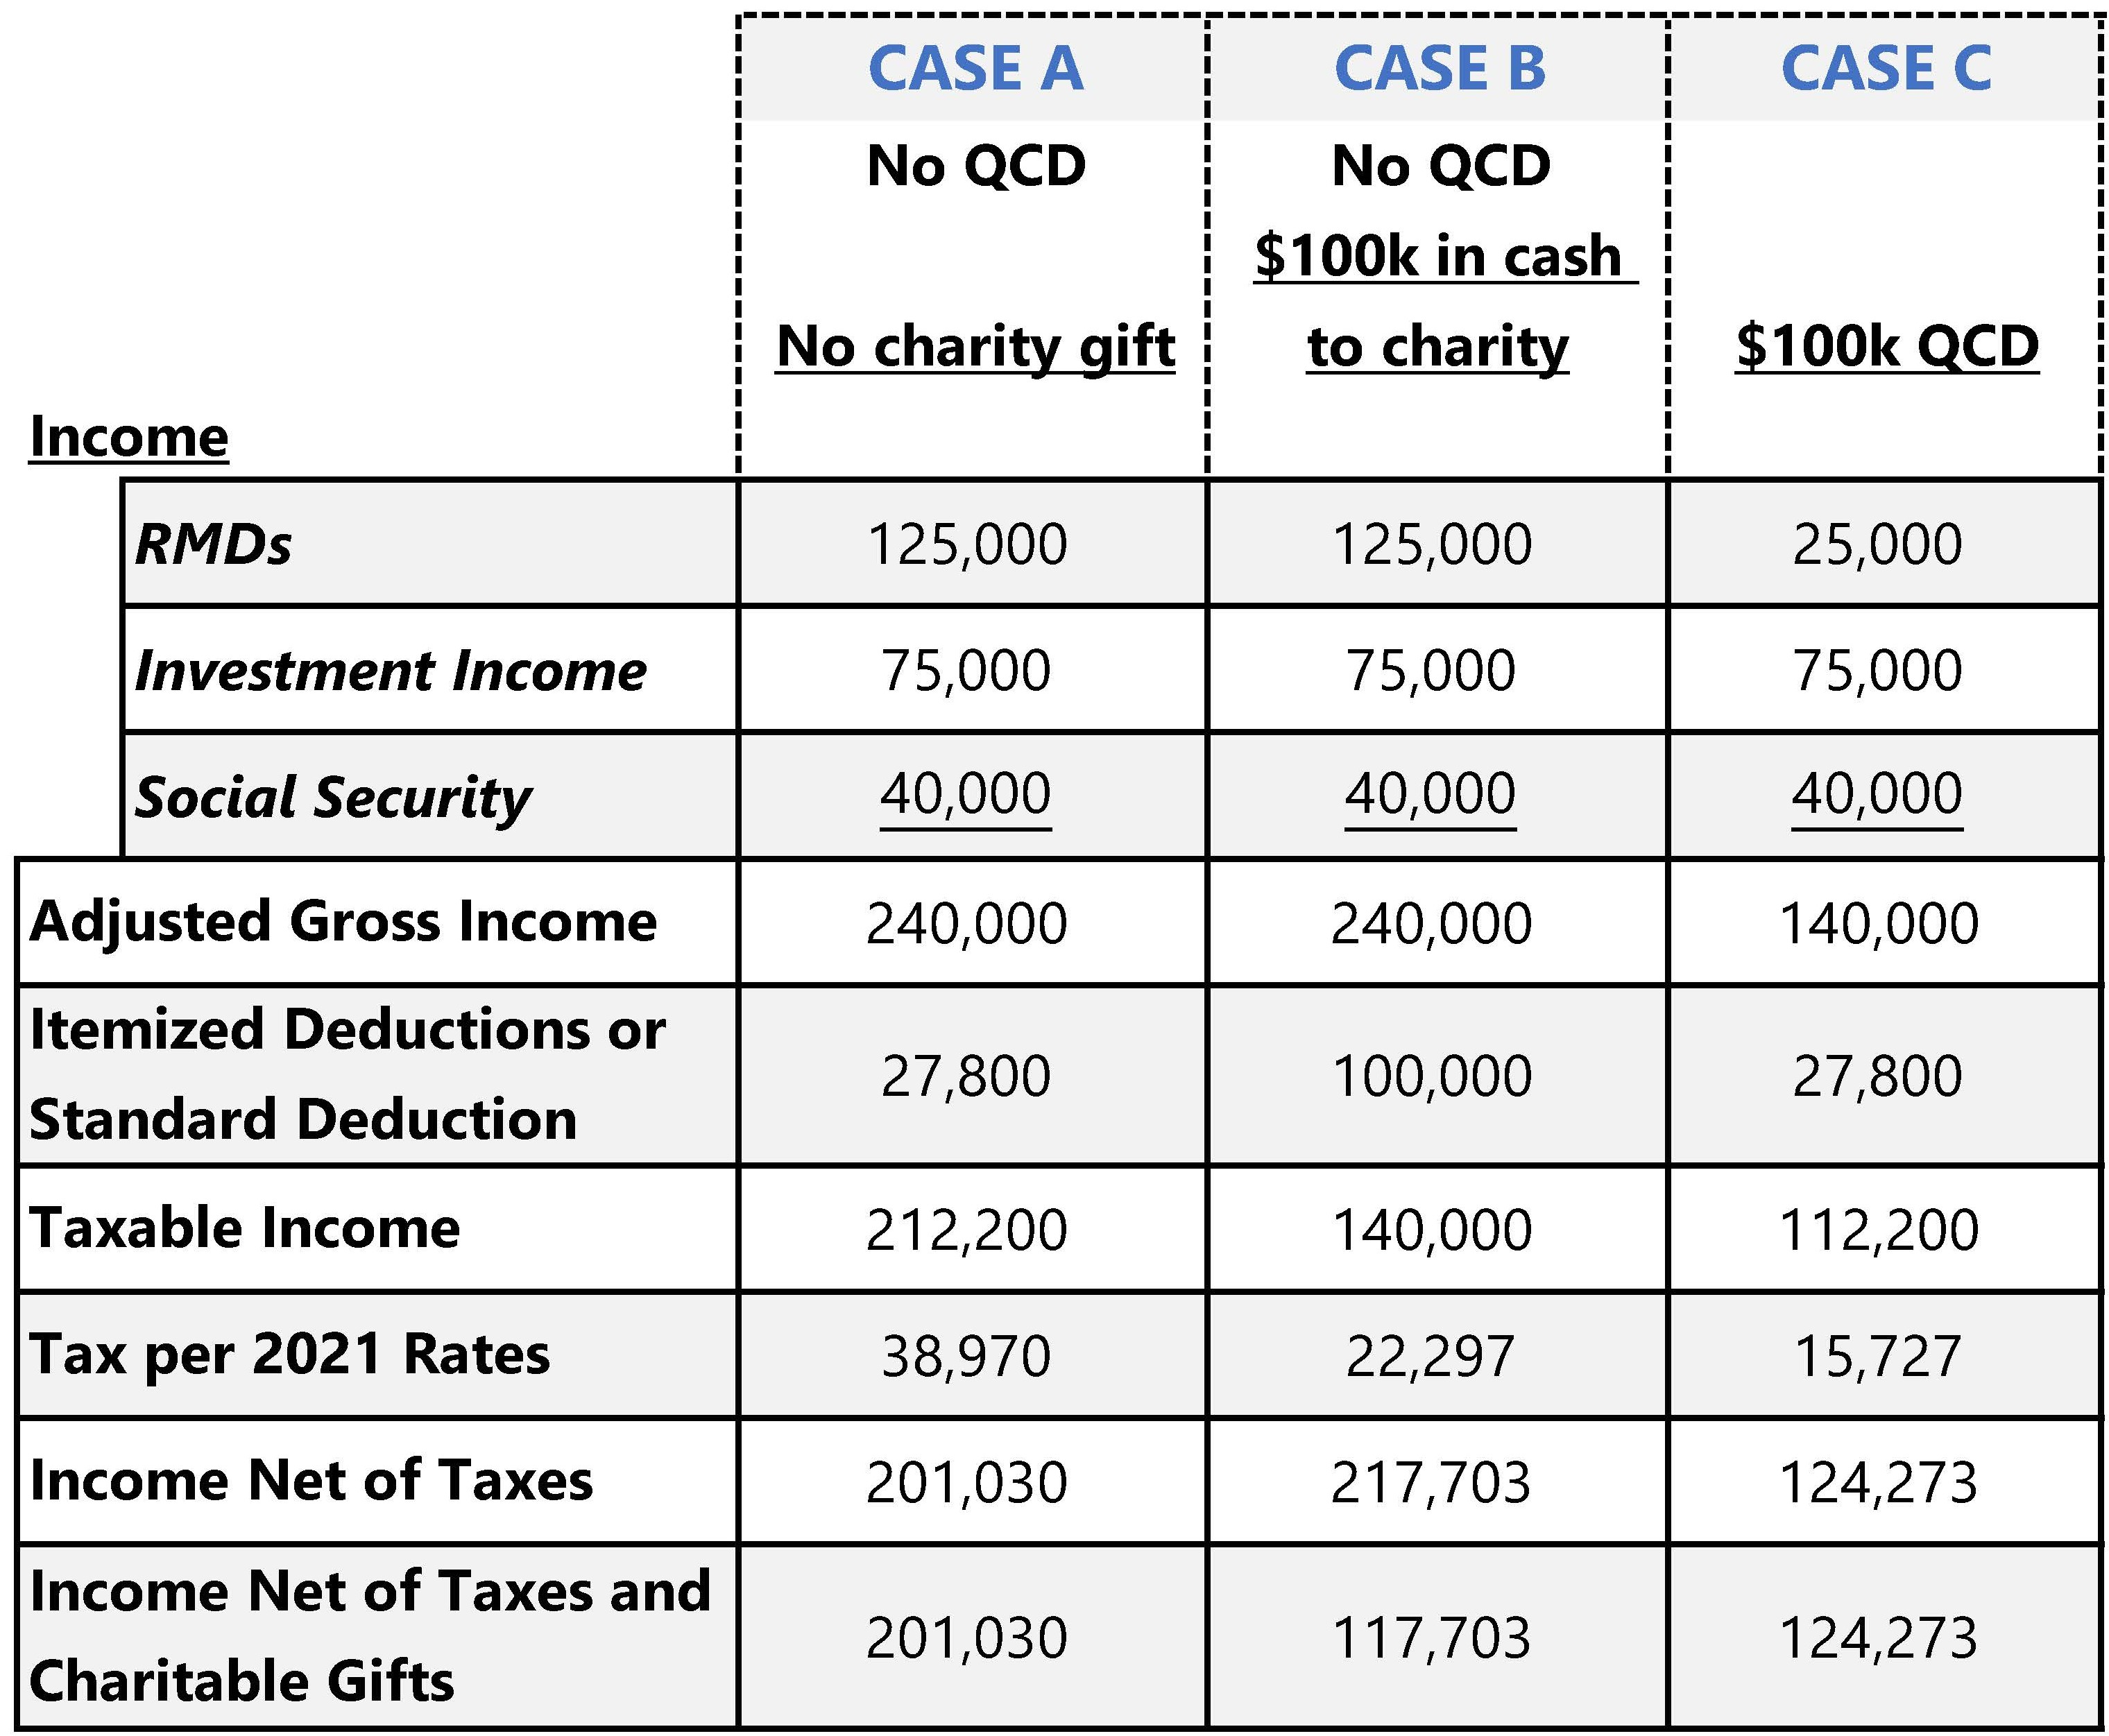 Table of Qualified Charitable Distribution (QCD) Cases